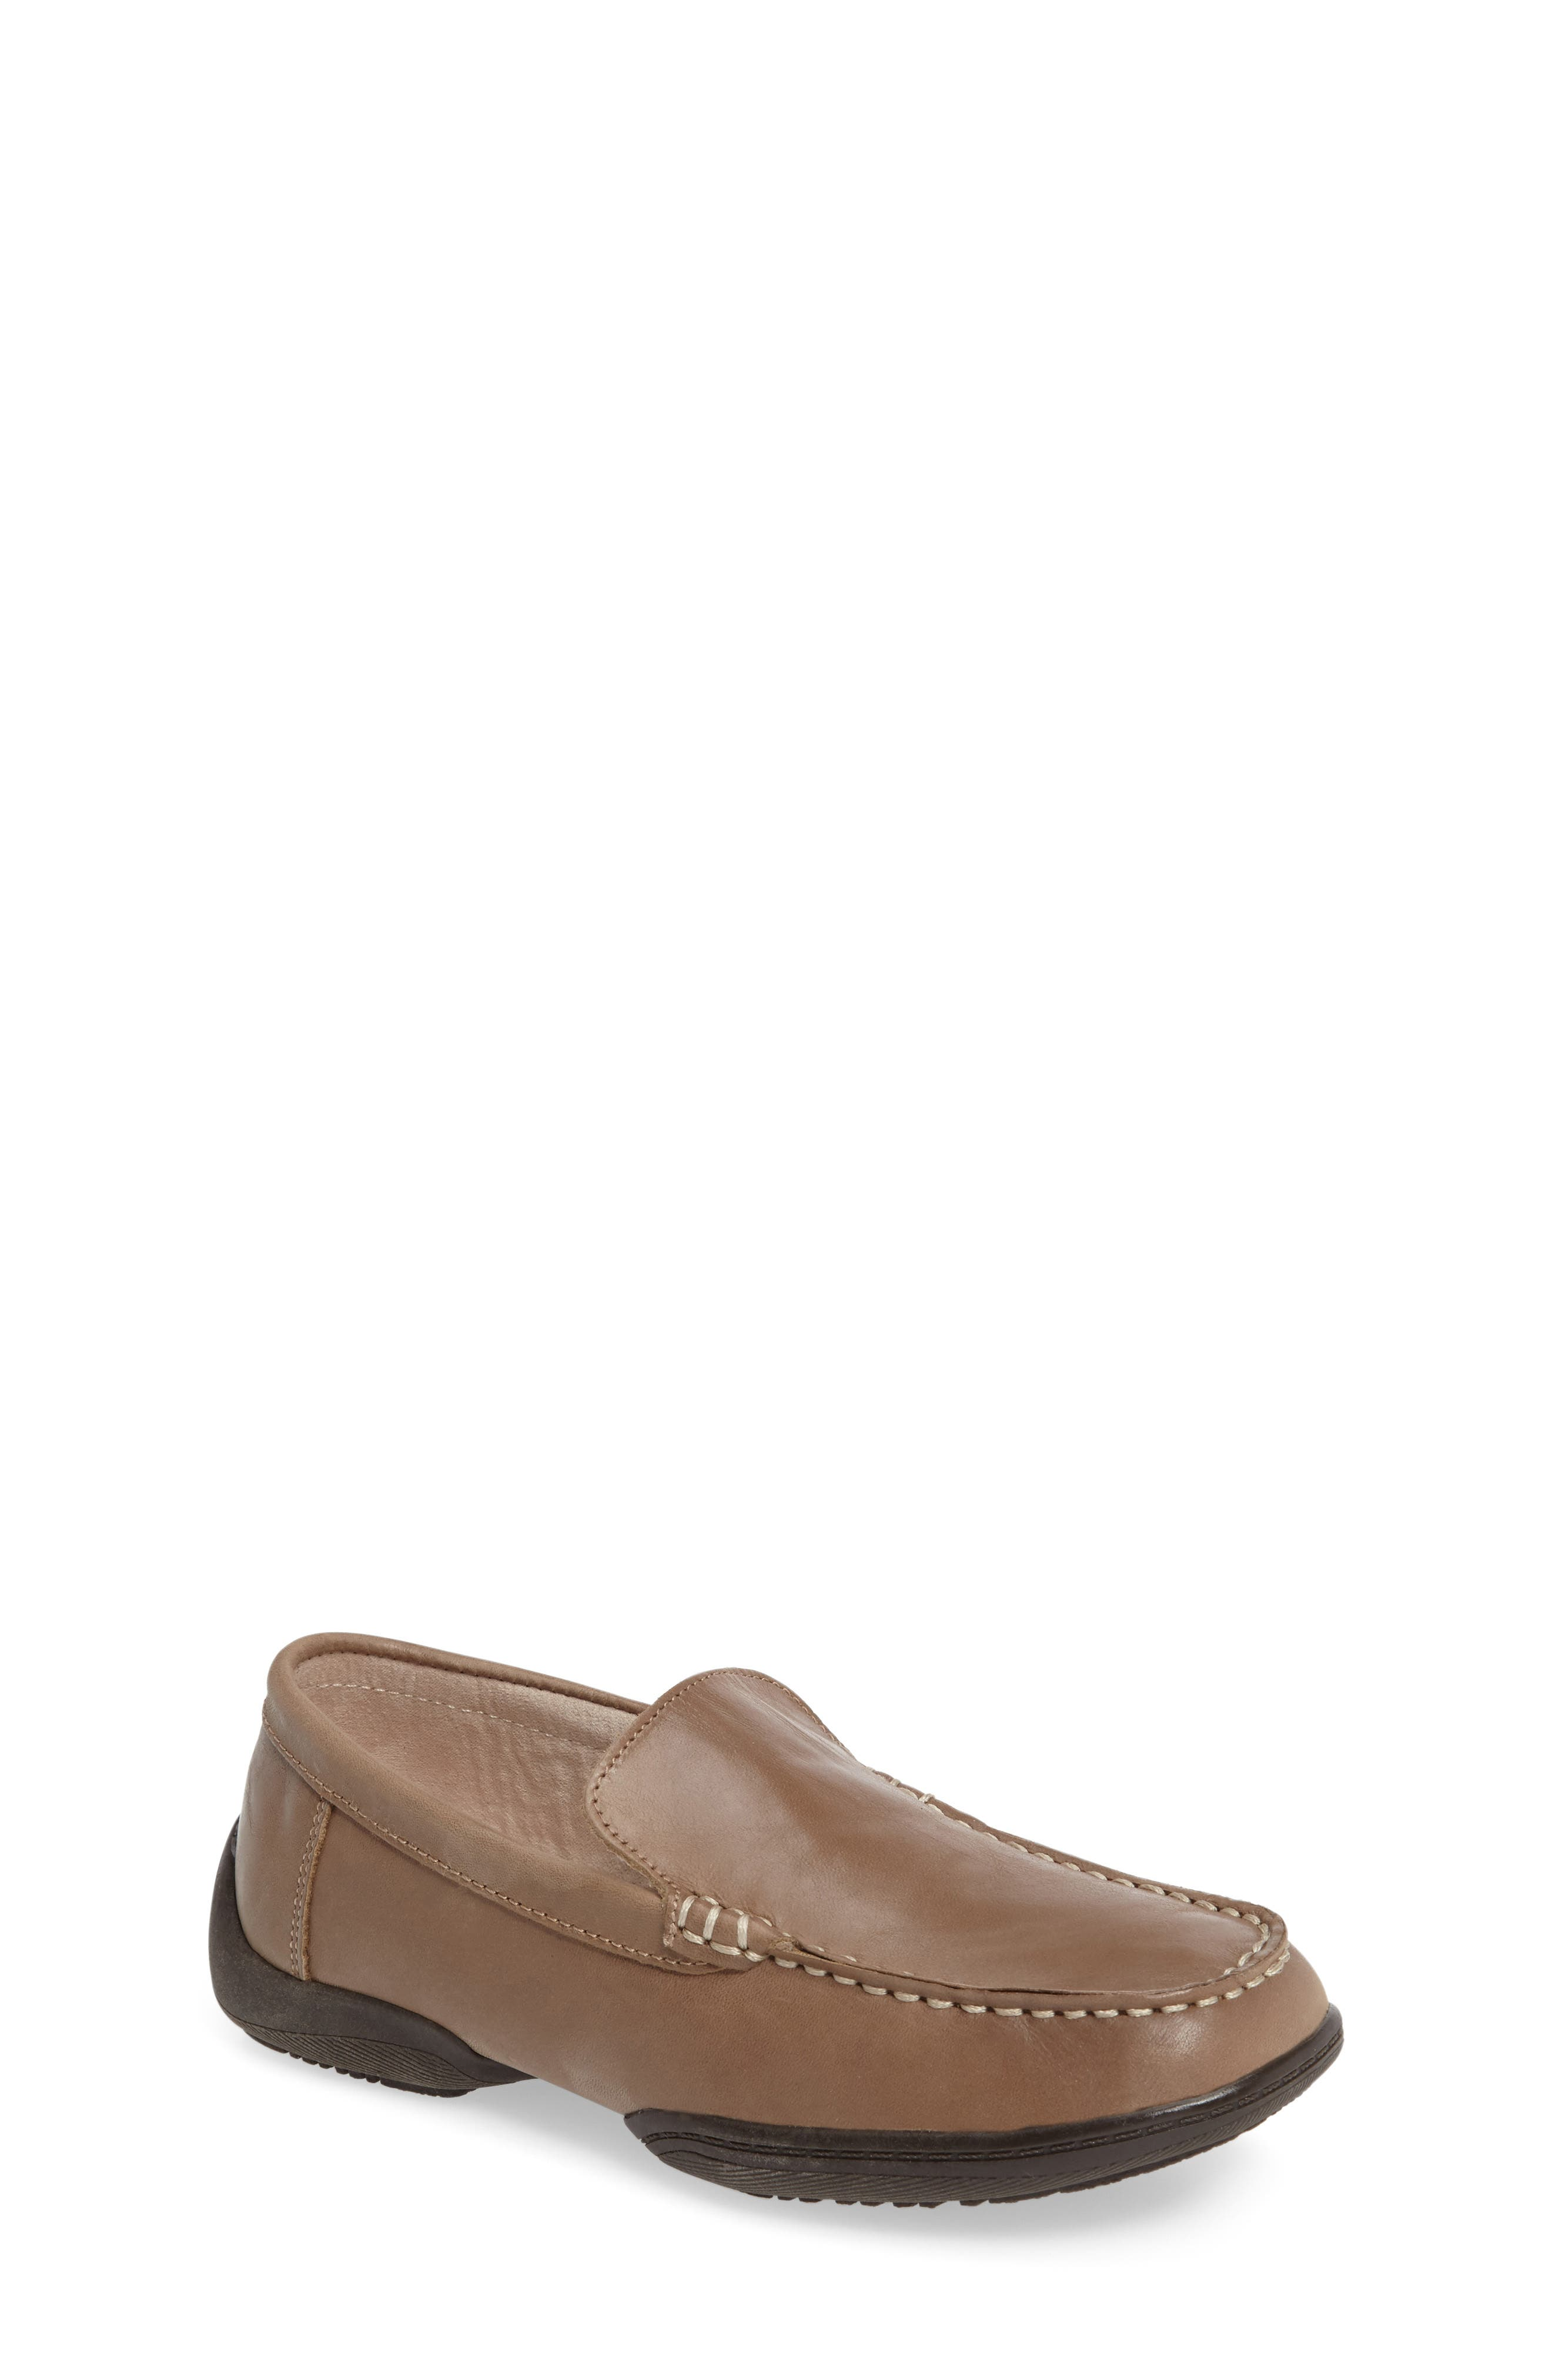 Reaction Kenneth Cole Driving Dime Moccasin (Toddler, Little Kid & Big Kid)